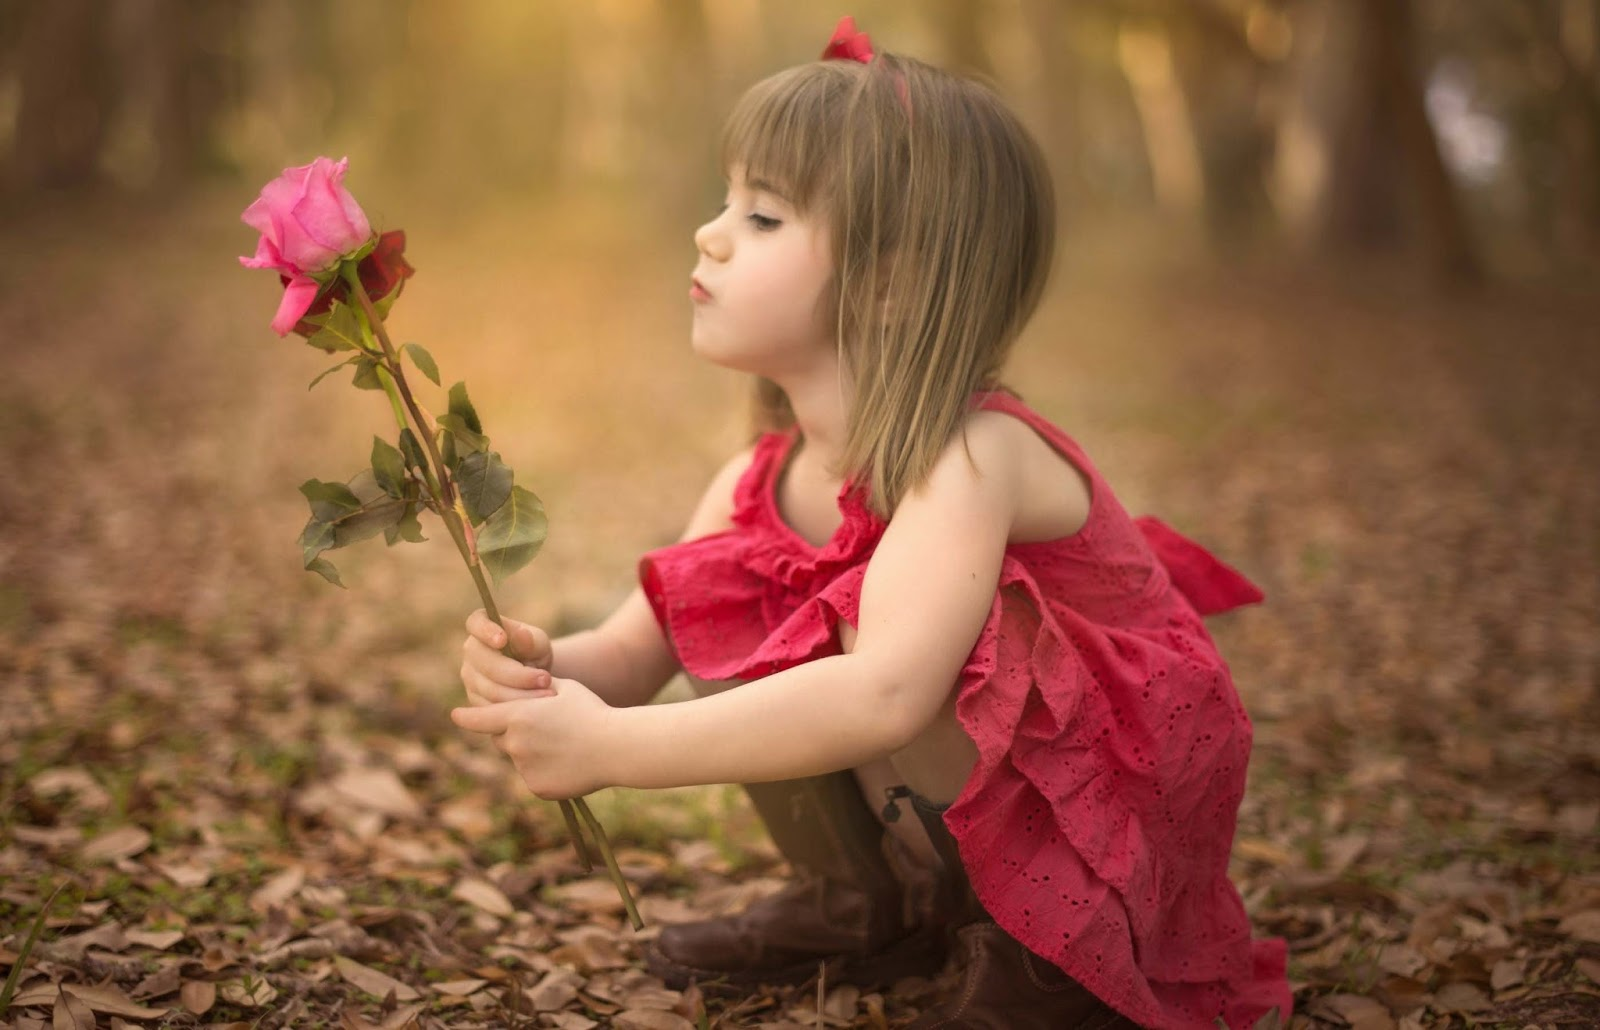 Cute and Lovely Baby Pictures Free Download Love - Images ...